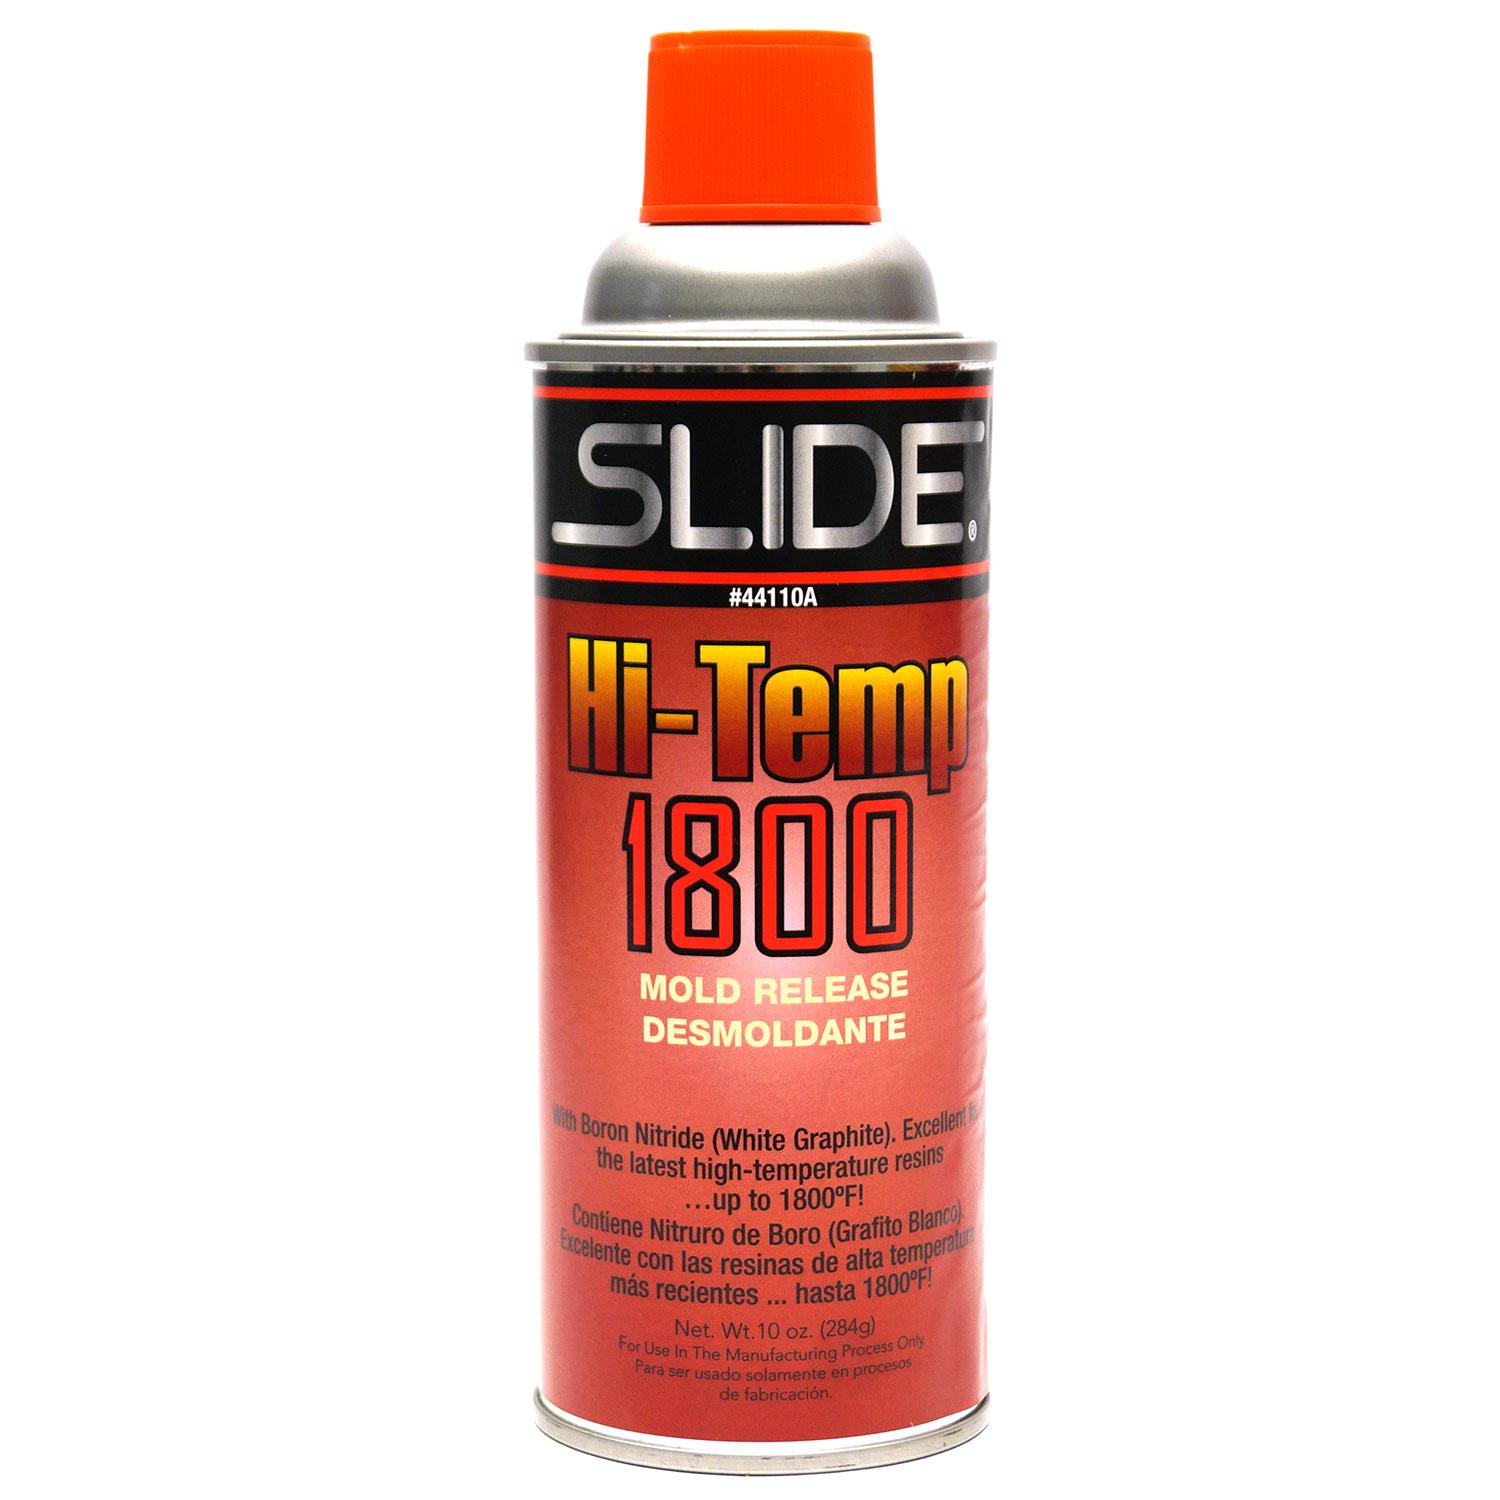 Hi-Temp 1800 Mold Release And Lubricant